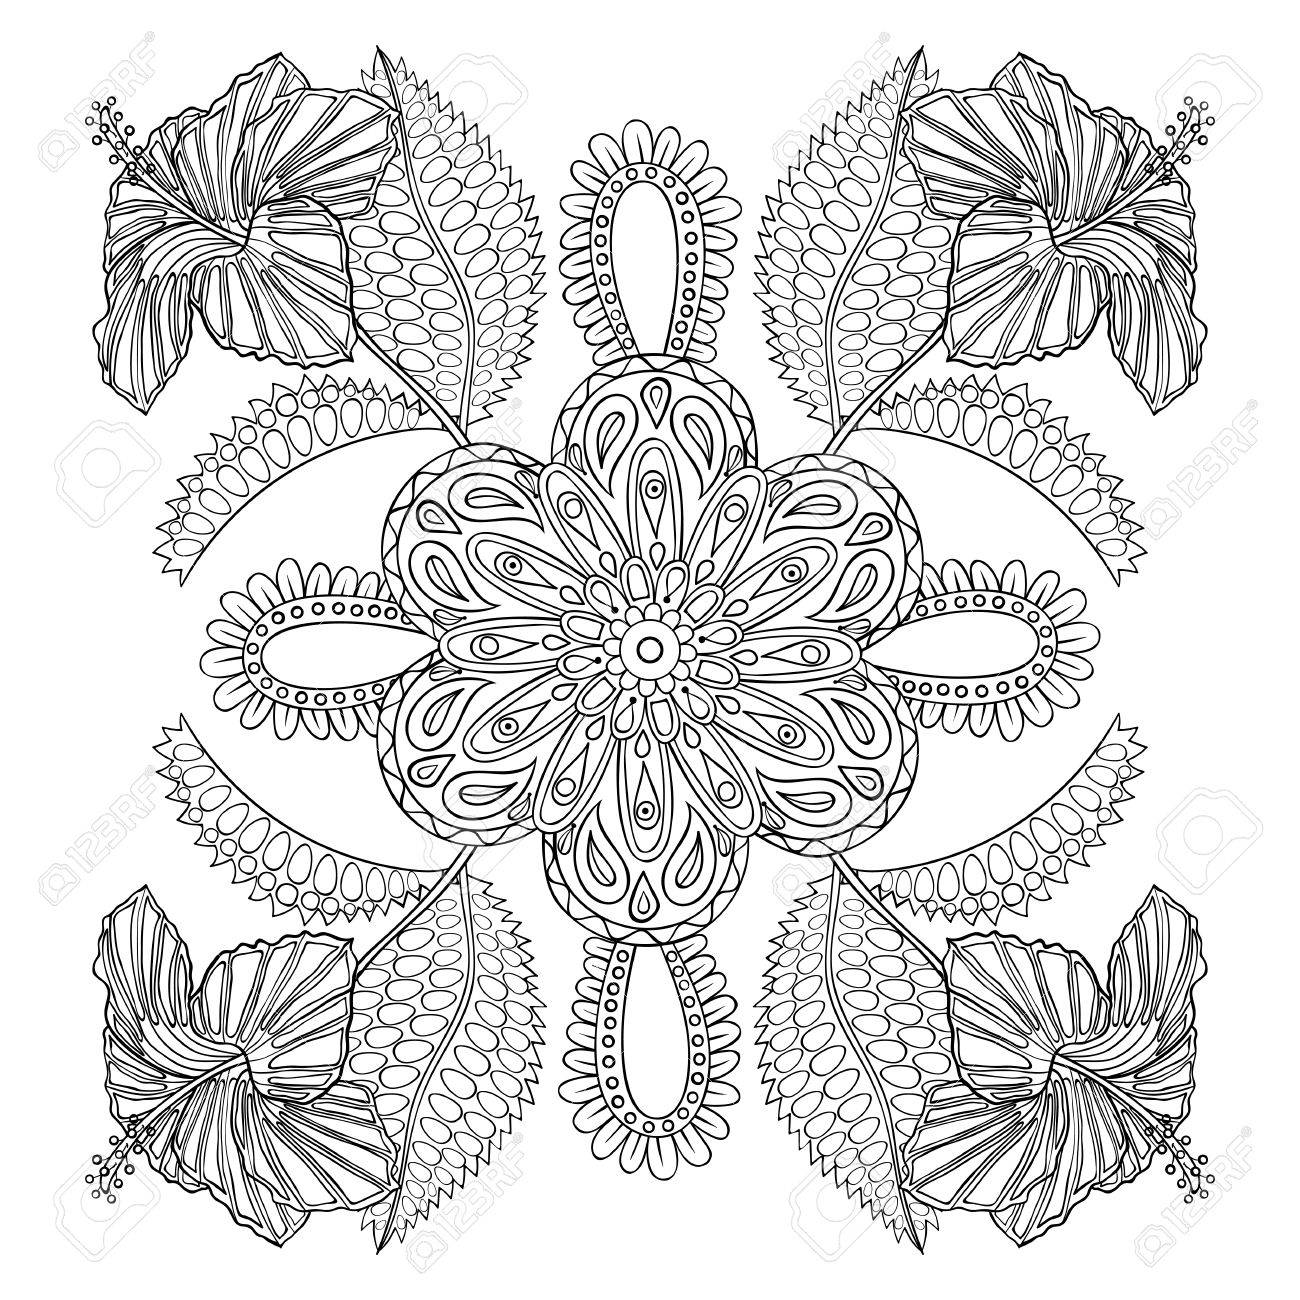 coloring page with exotic flowers brunch zentangle illustartion